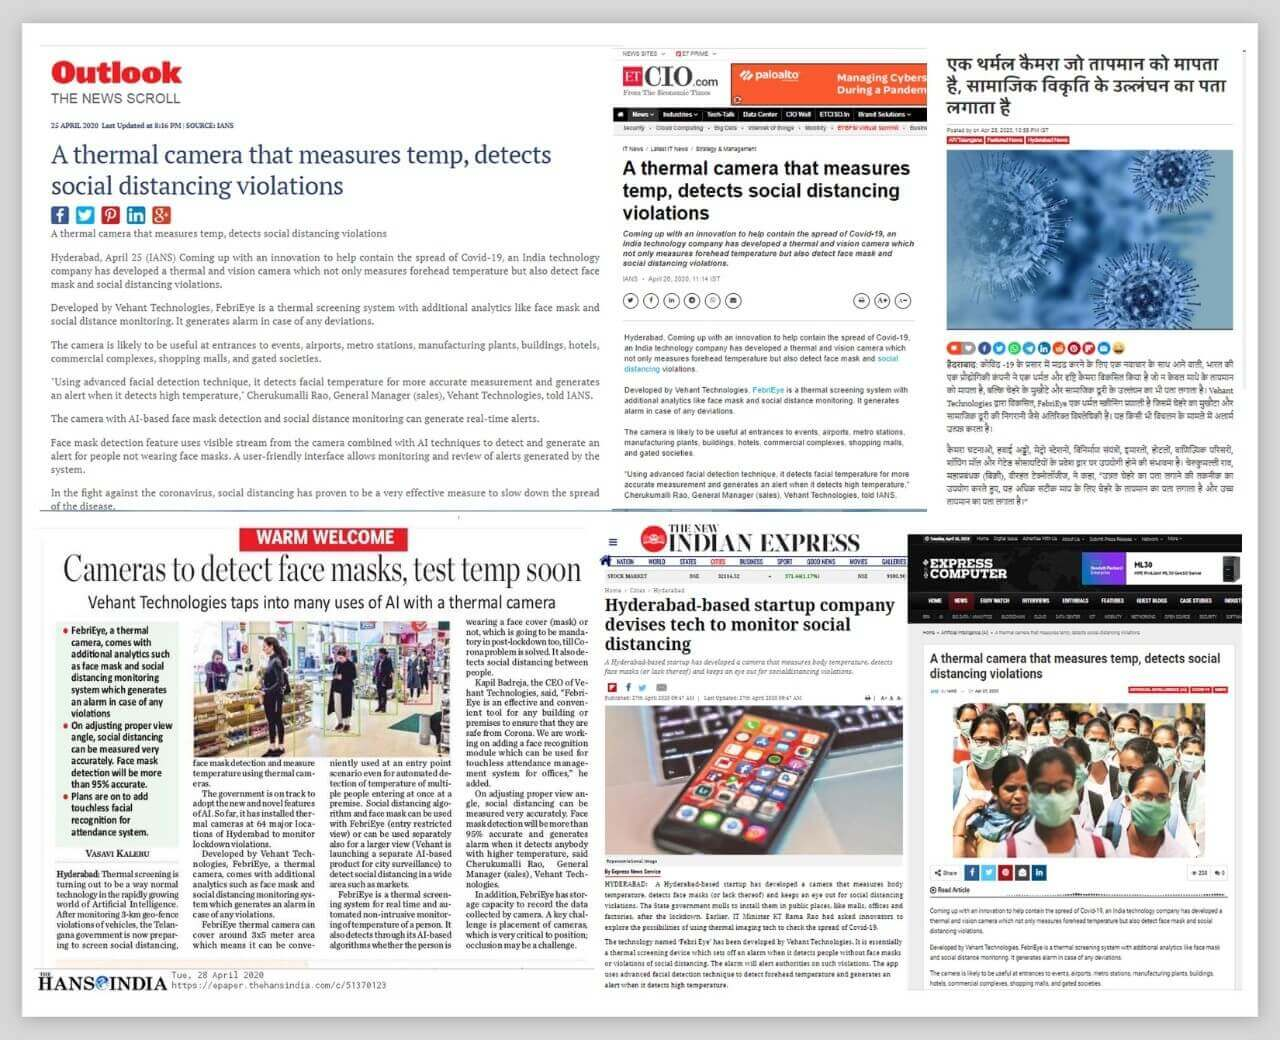 Vehant's FebriEye™ - AI based Thermal Temprature Screening System launched last week received extensive coverage on leading news platforms